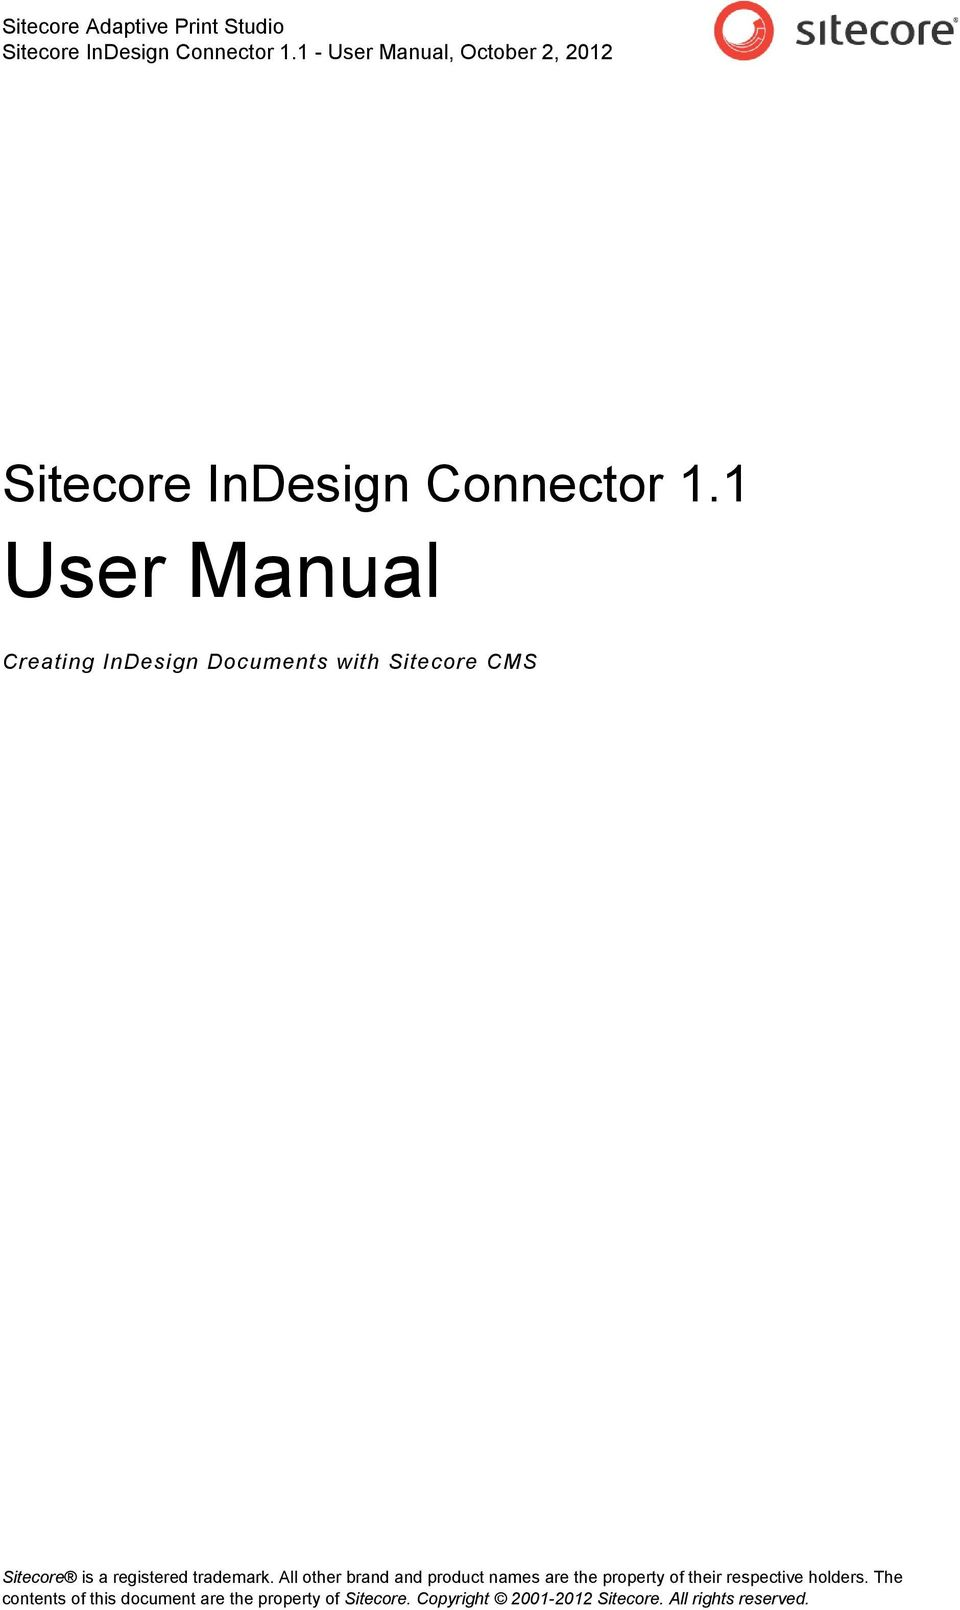 1 - User Manual, October 2, 2012 Sitecore 1